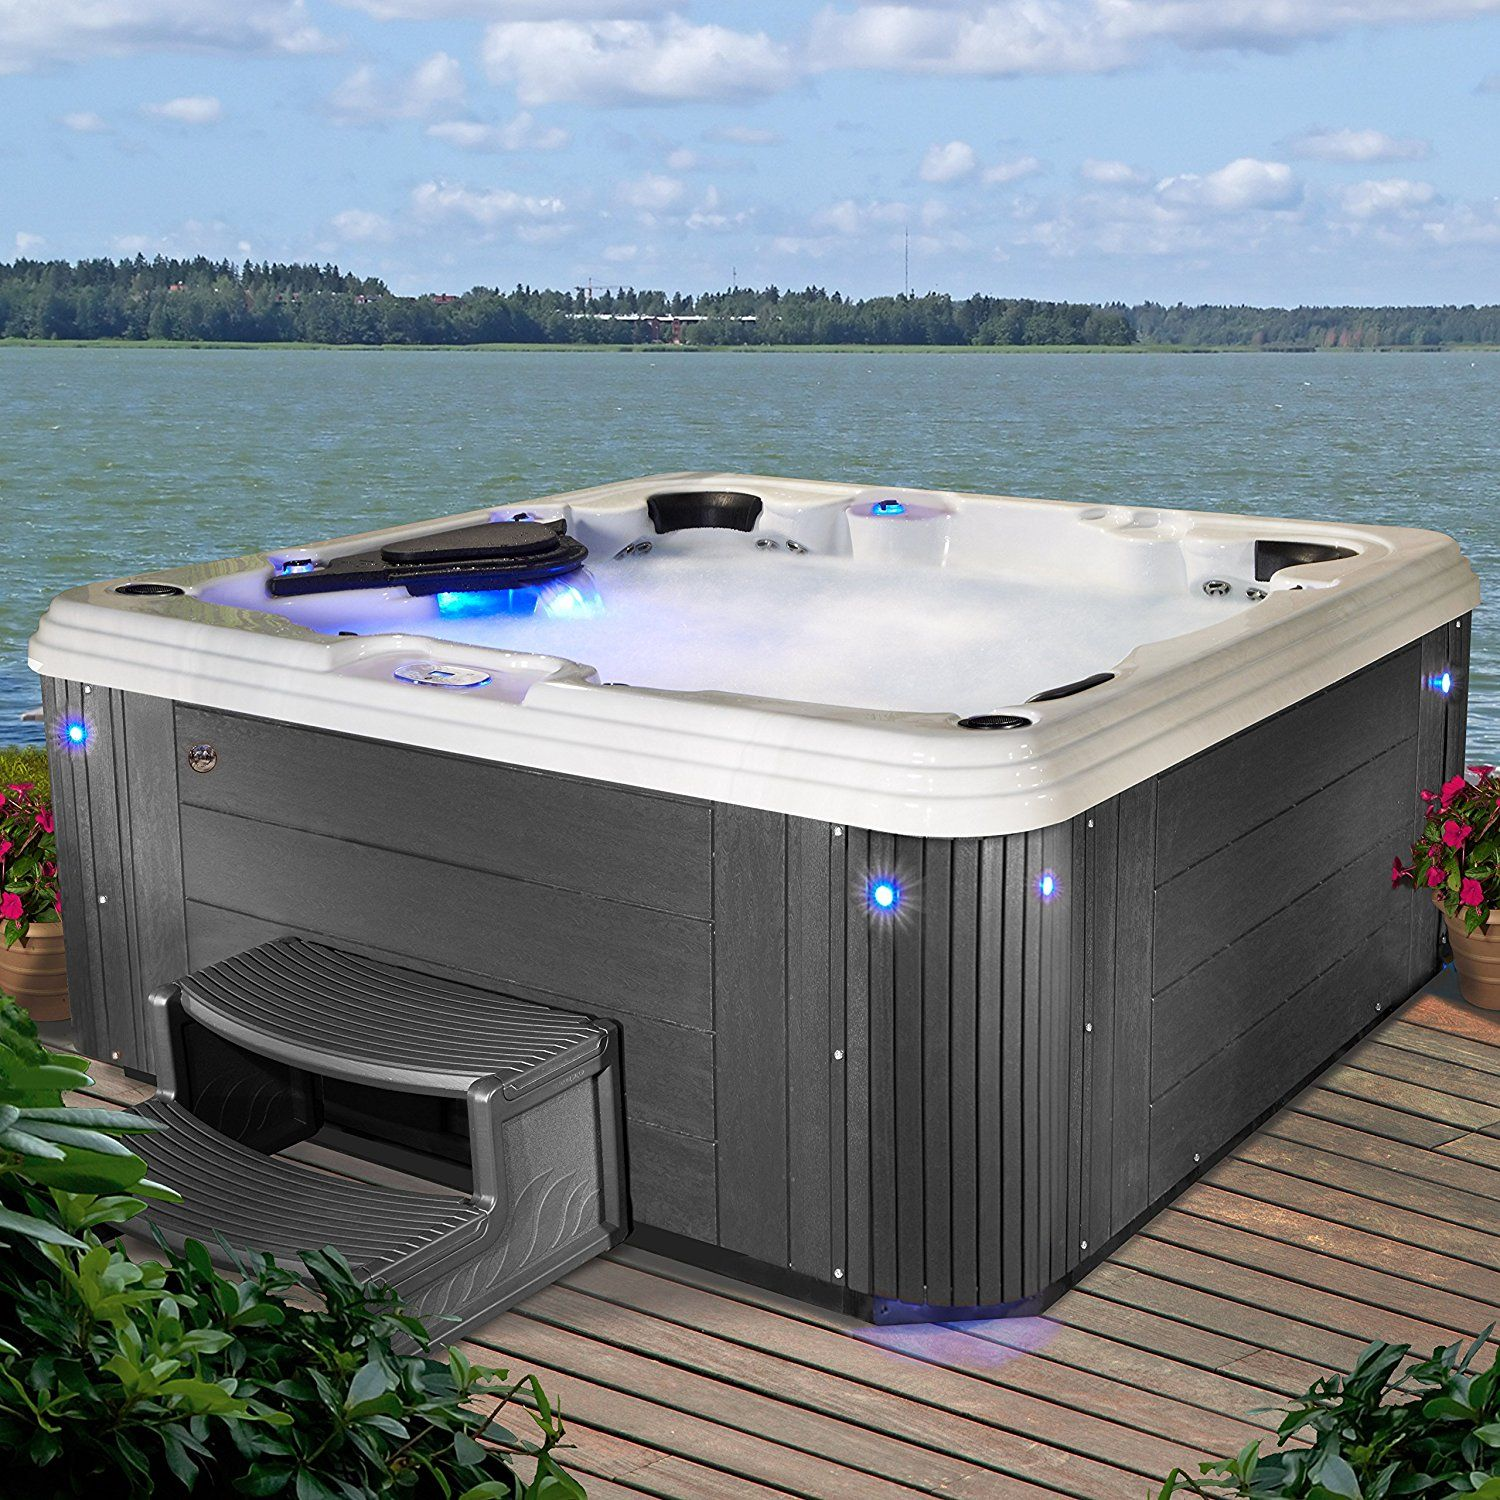 Jacuzzi Pool Amazon Amazon Essential Hot Tubs Ss234677403 Syracuse 67 Jet Hot